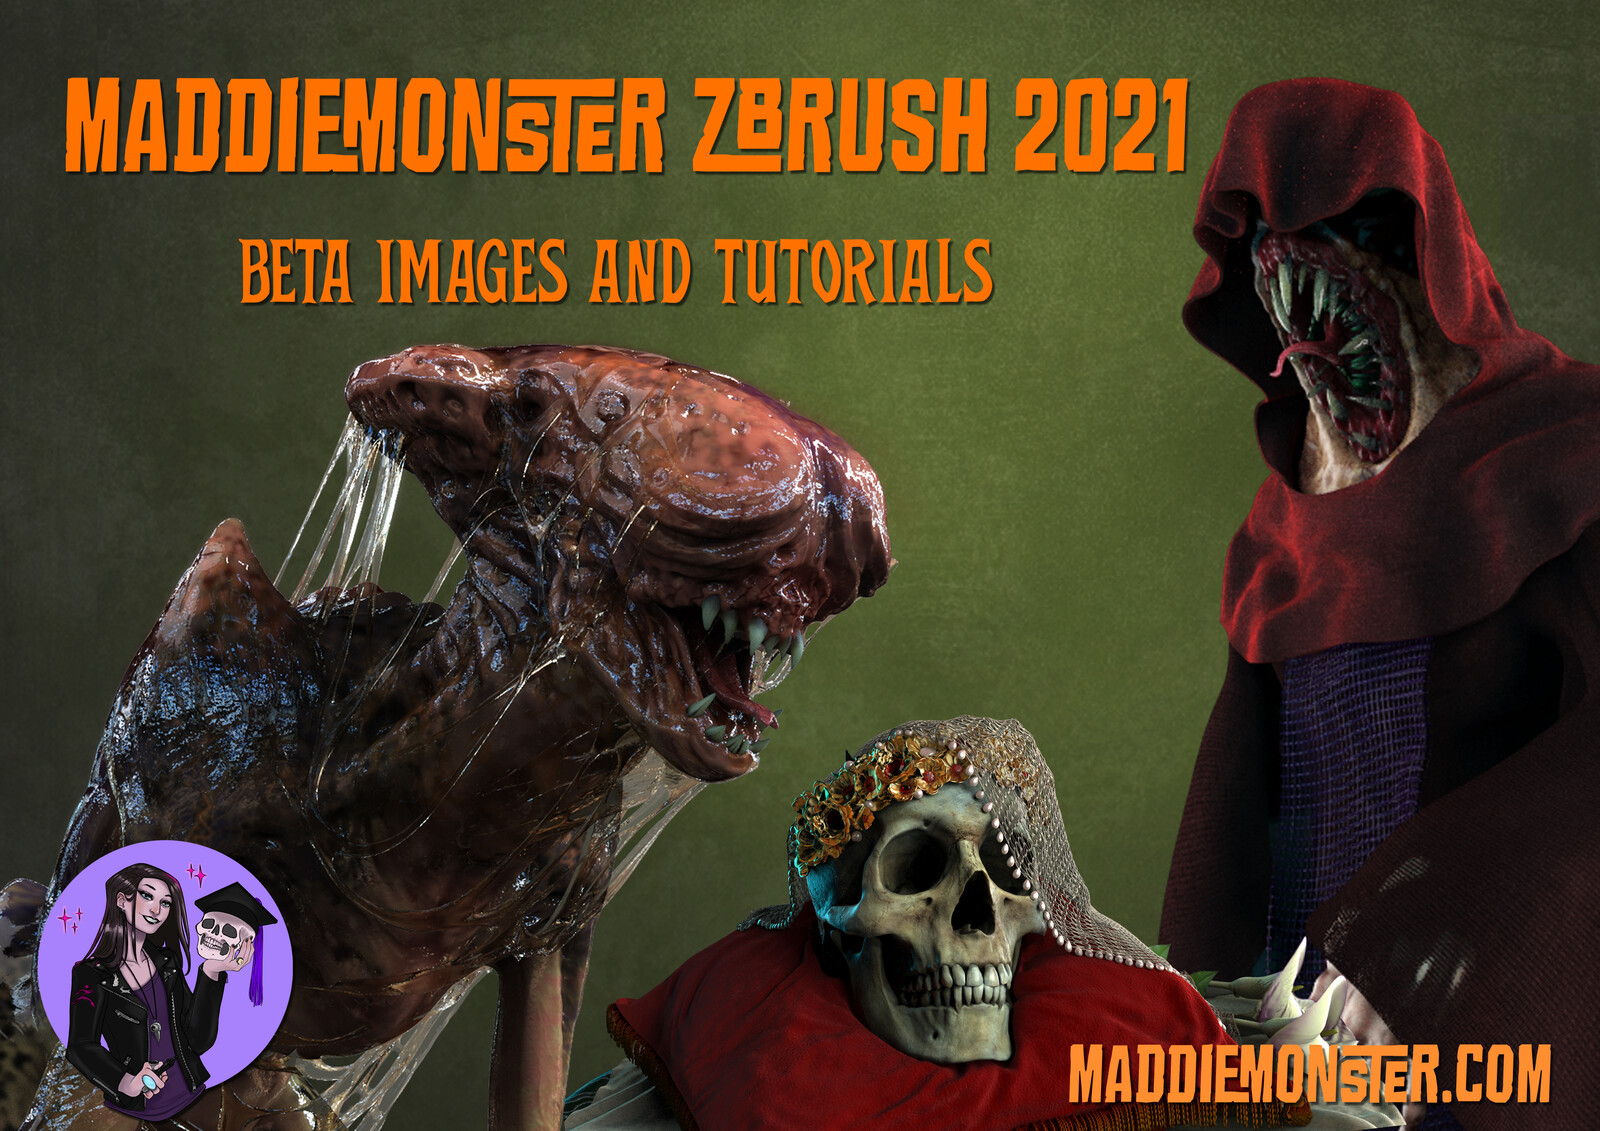 ZBrush 2021 Beta Test images and tutorials